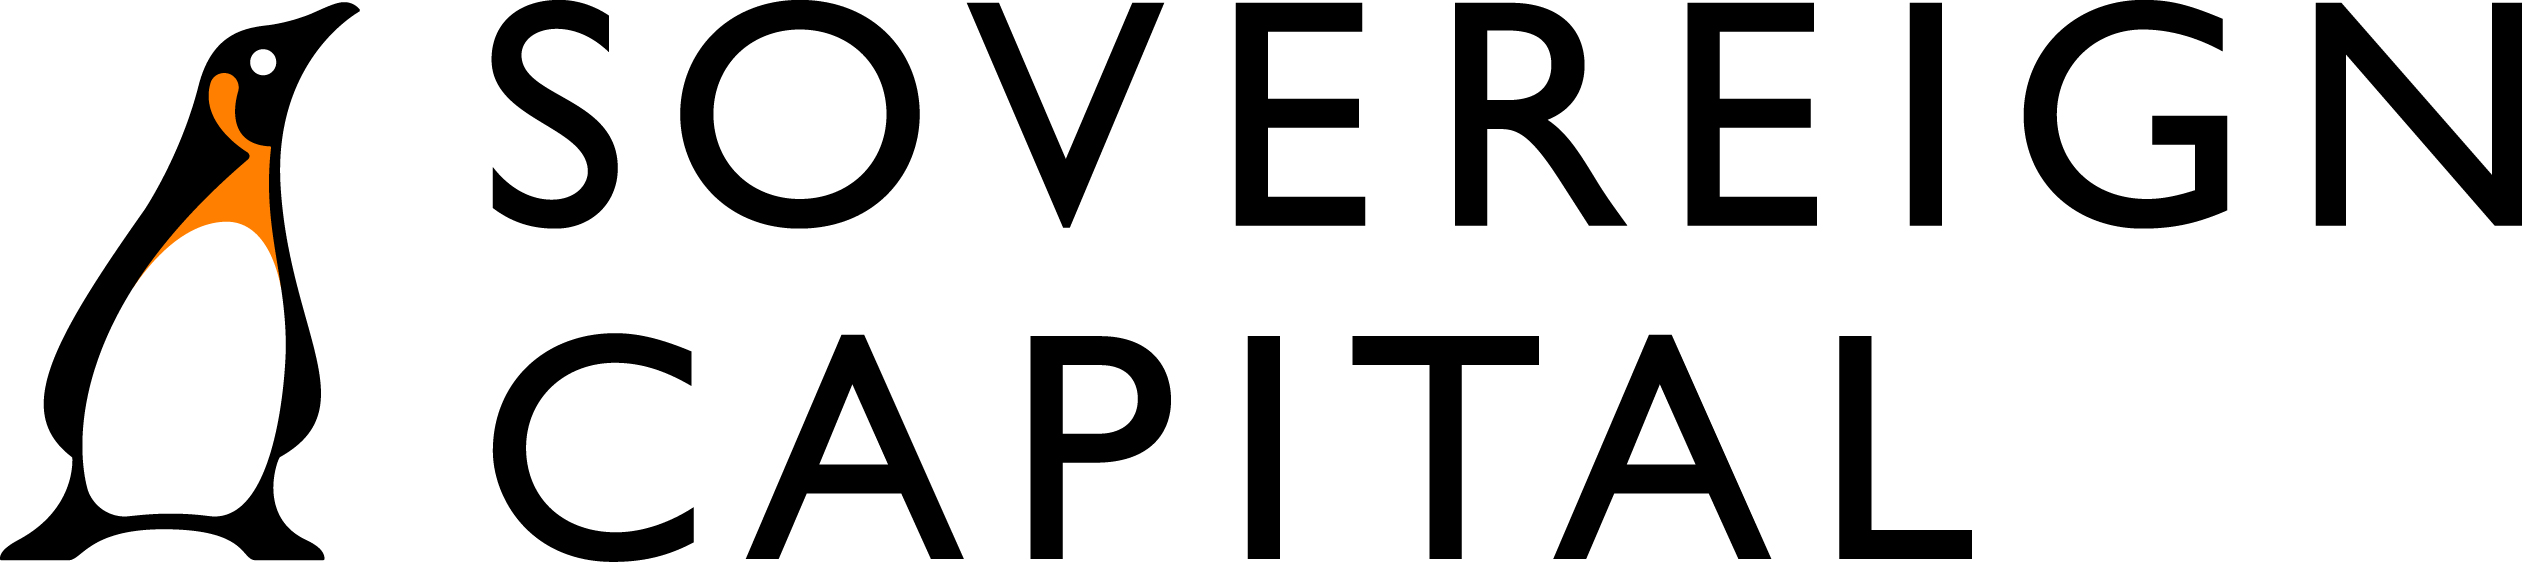 Sovereign Capital is a specialist investor that has been working with Education and Training businesses since 2002 to achieve transformational growth. Investing up to £60m of equity in any one transaction, we work with management teams to deliver accelerated quality growth both organically and through acquisitions